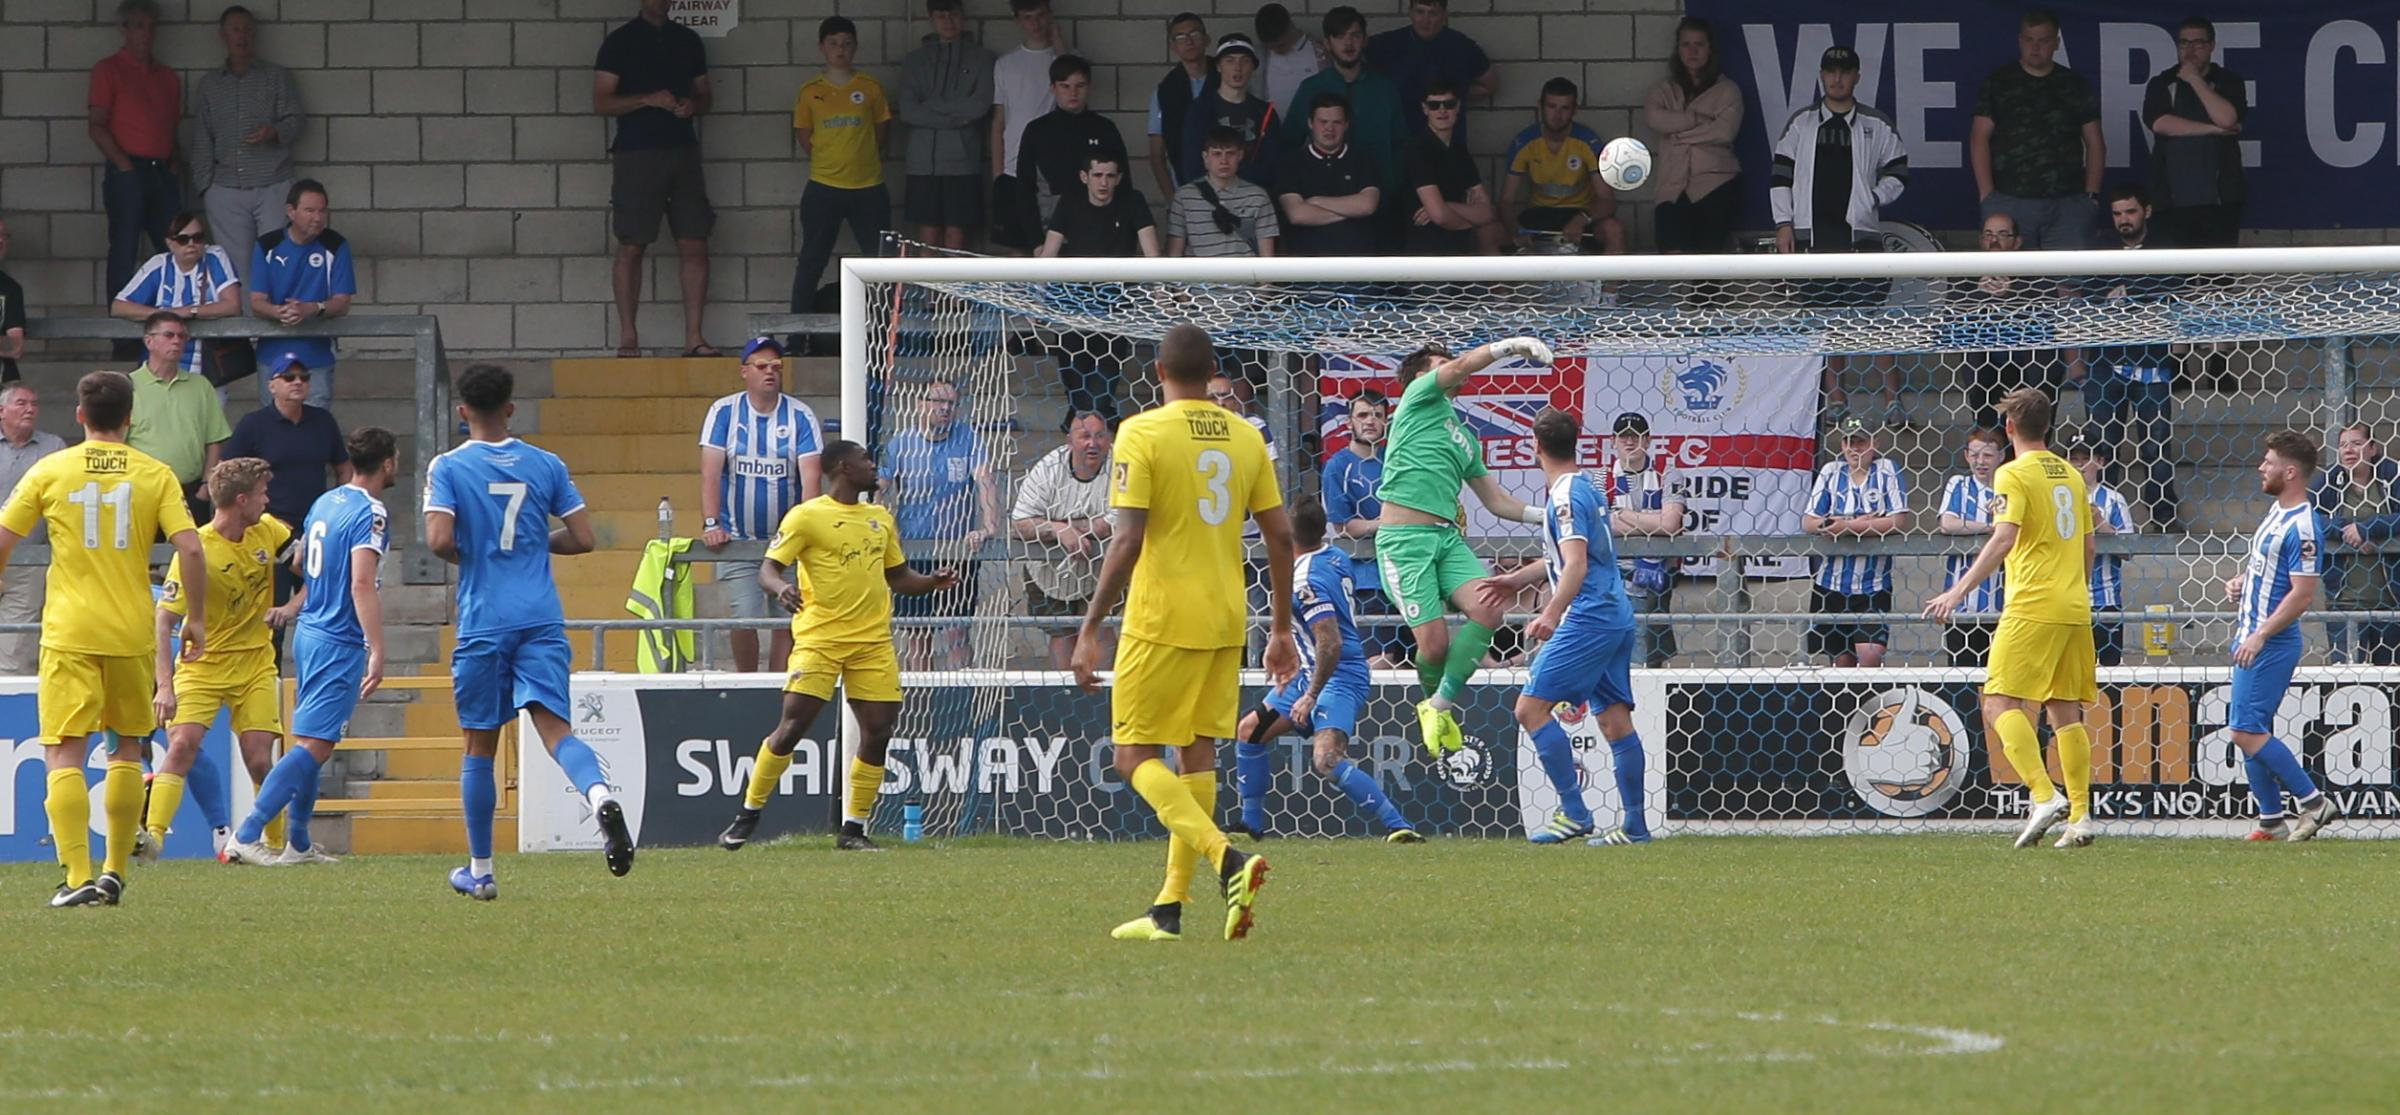 DOING HIS BIT: Chester stopper Grant Shenton makes a save against Brackley. Picture: RICK MATTHEWS